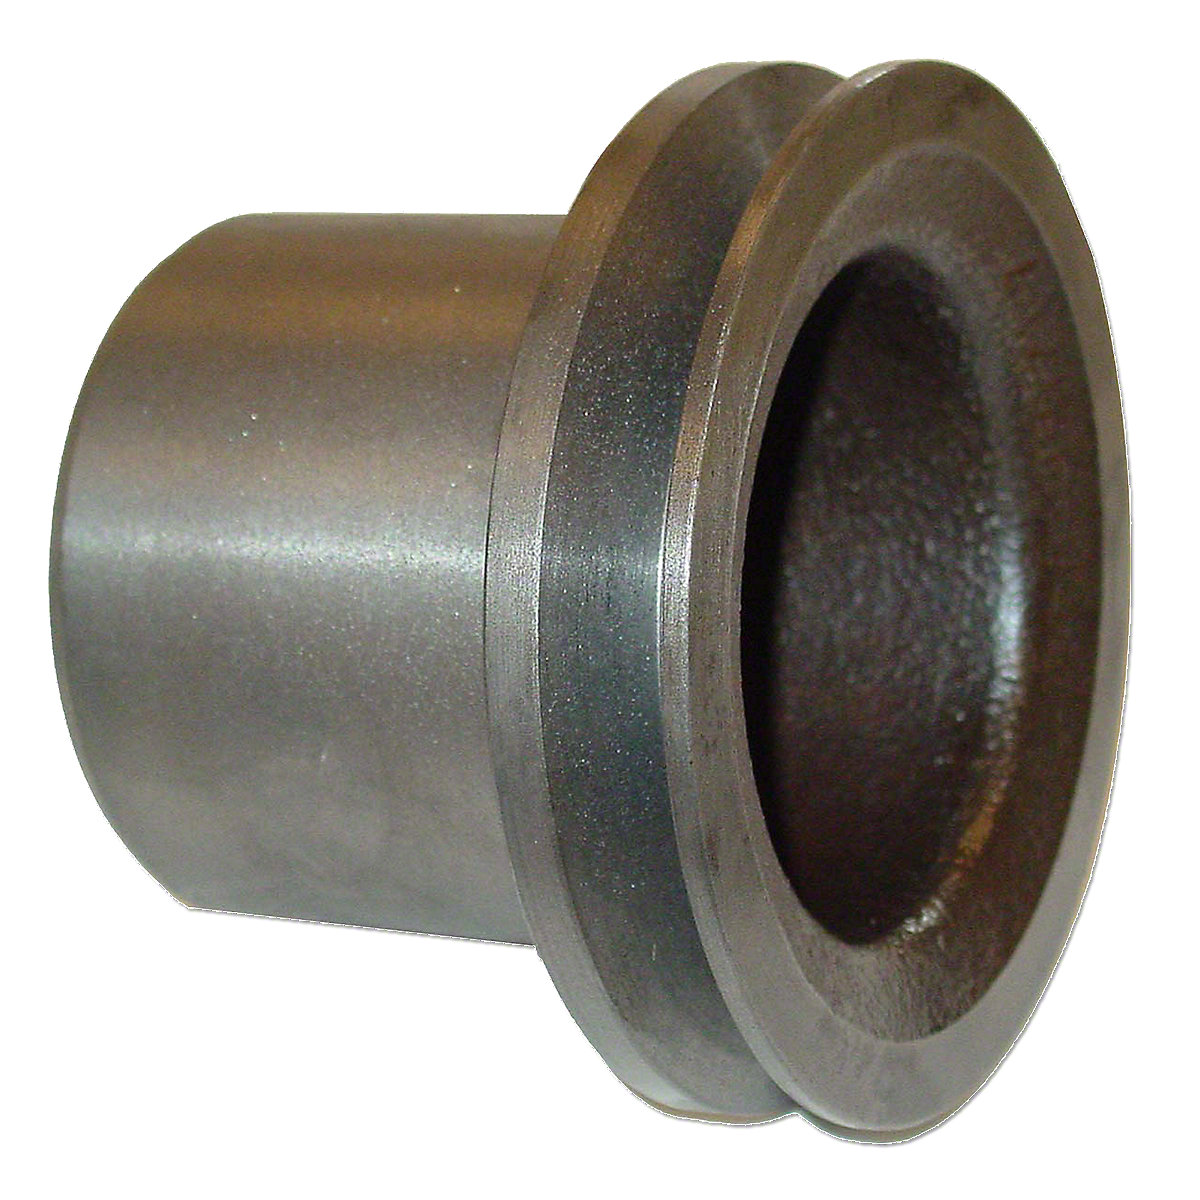 Water Pump Pulley For Massey Ferguson: 50, 65, 150, 40.